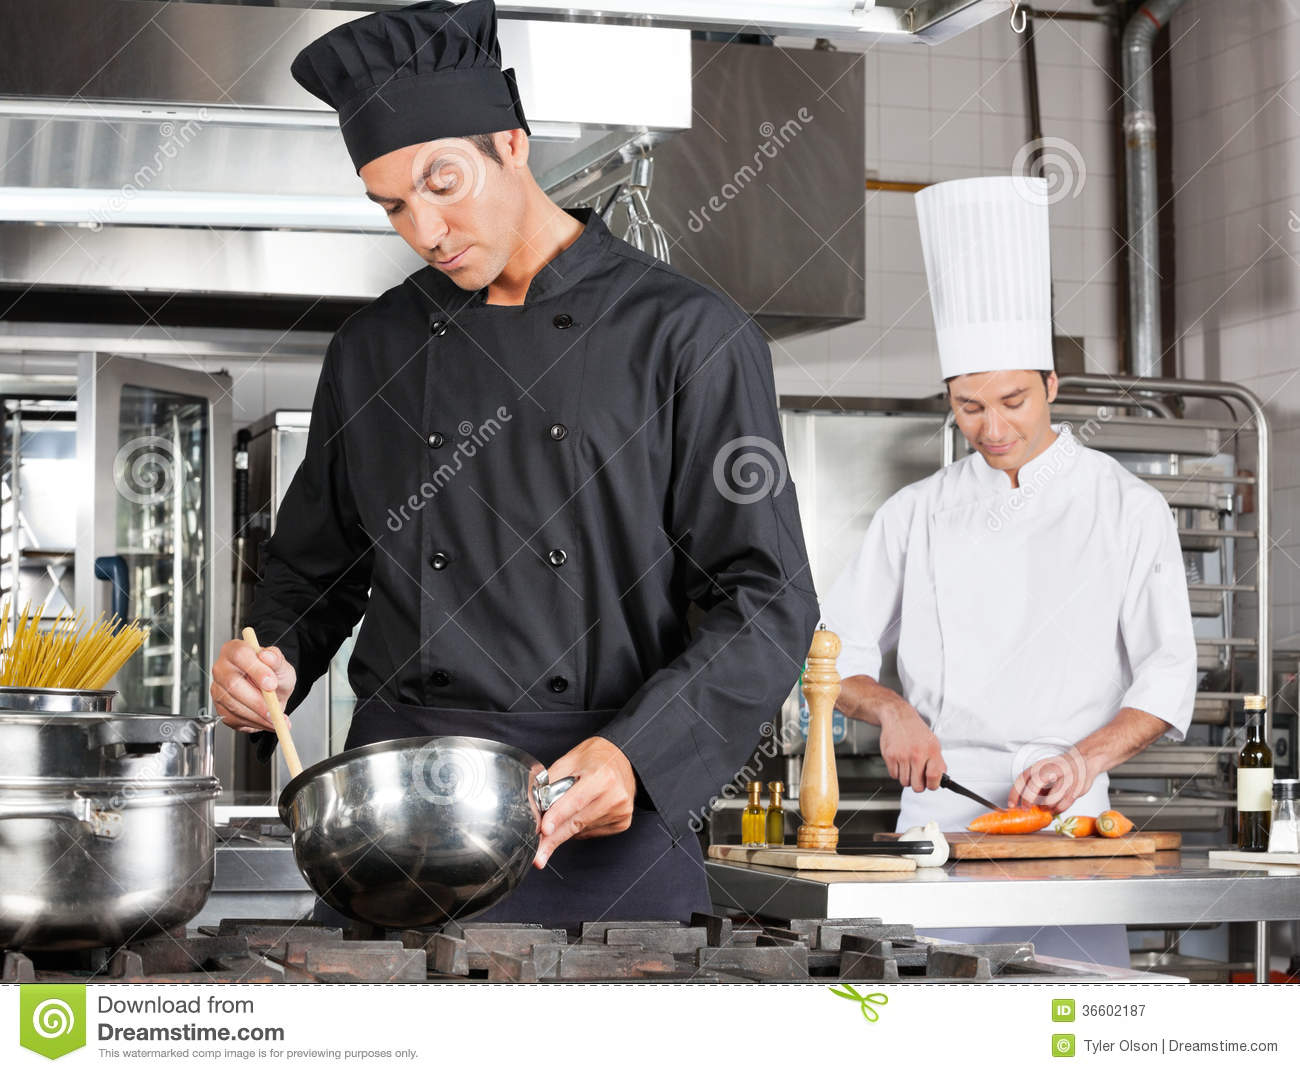 Chef-Cooking Food With-Kollege-Hacken